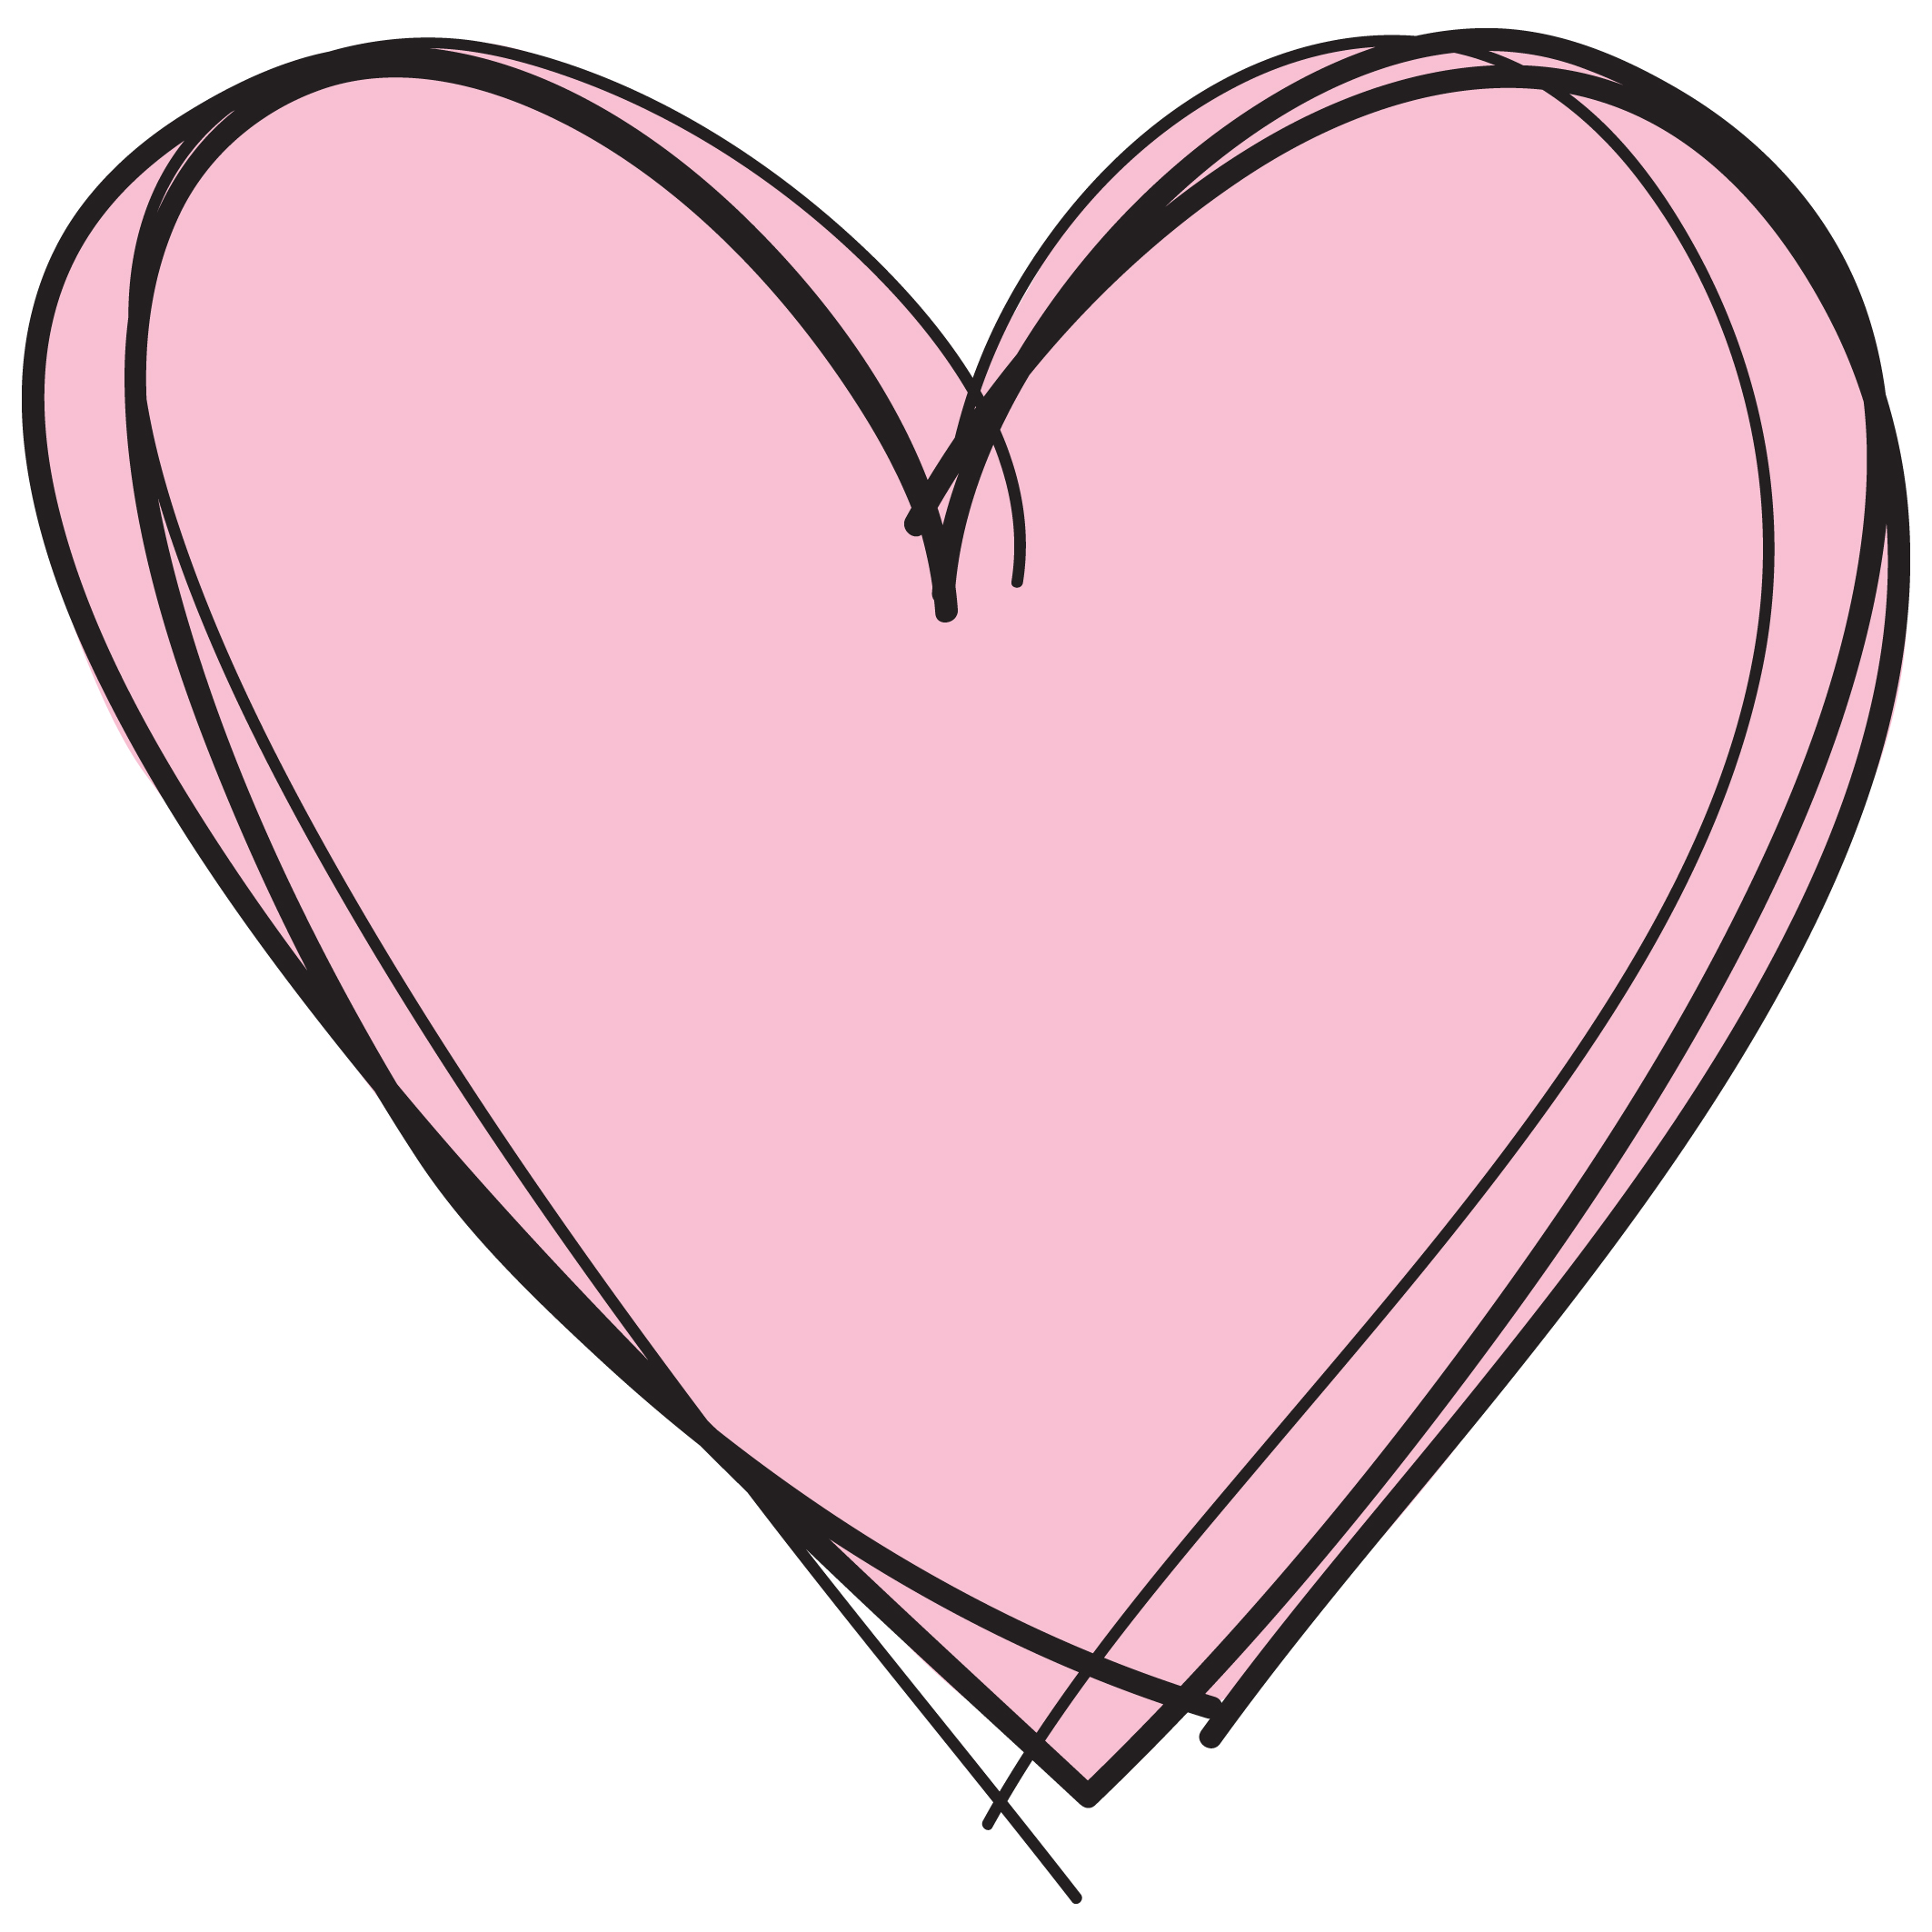 Clipart Panda - Free Clipart Images |Pink Heart Outline Clipart